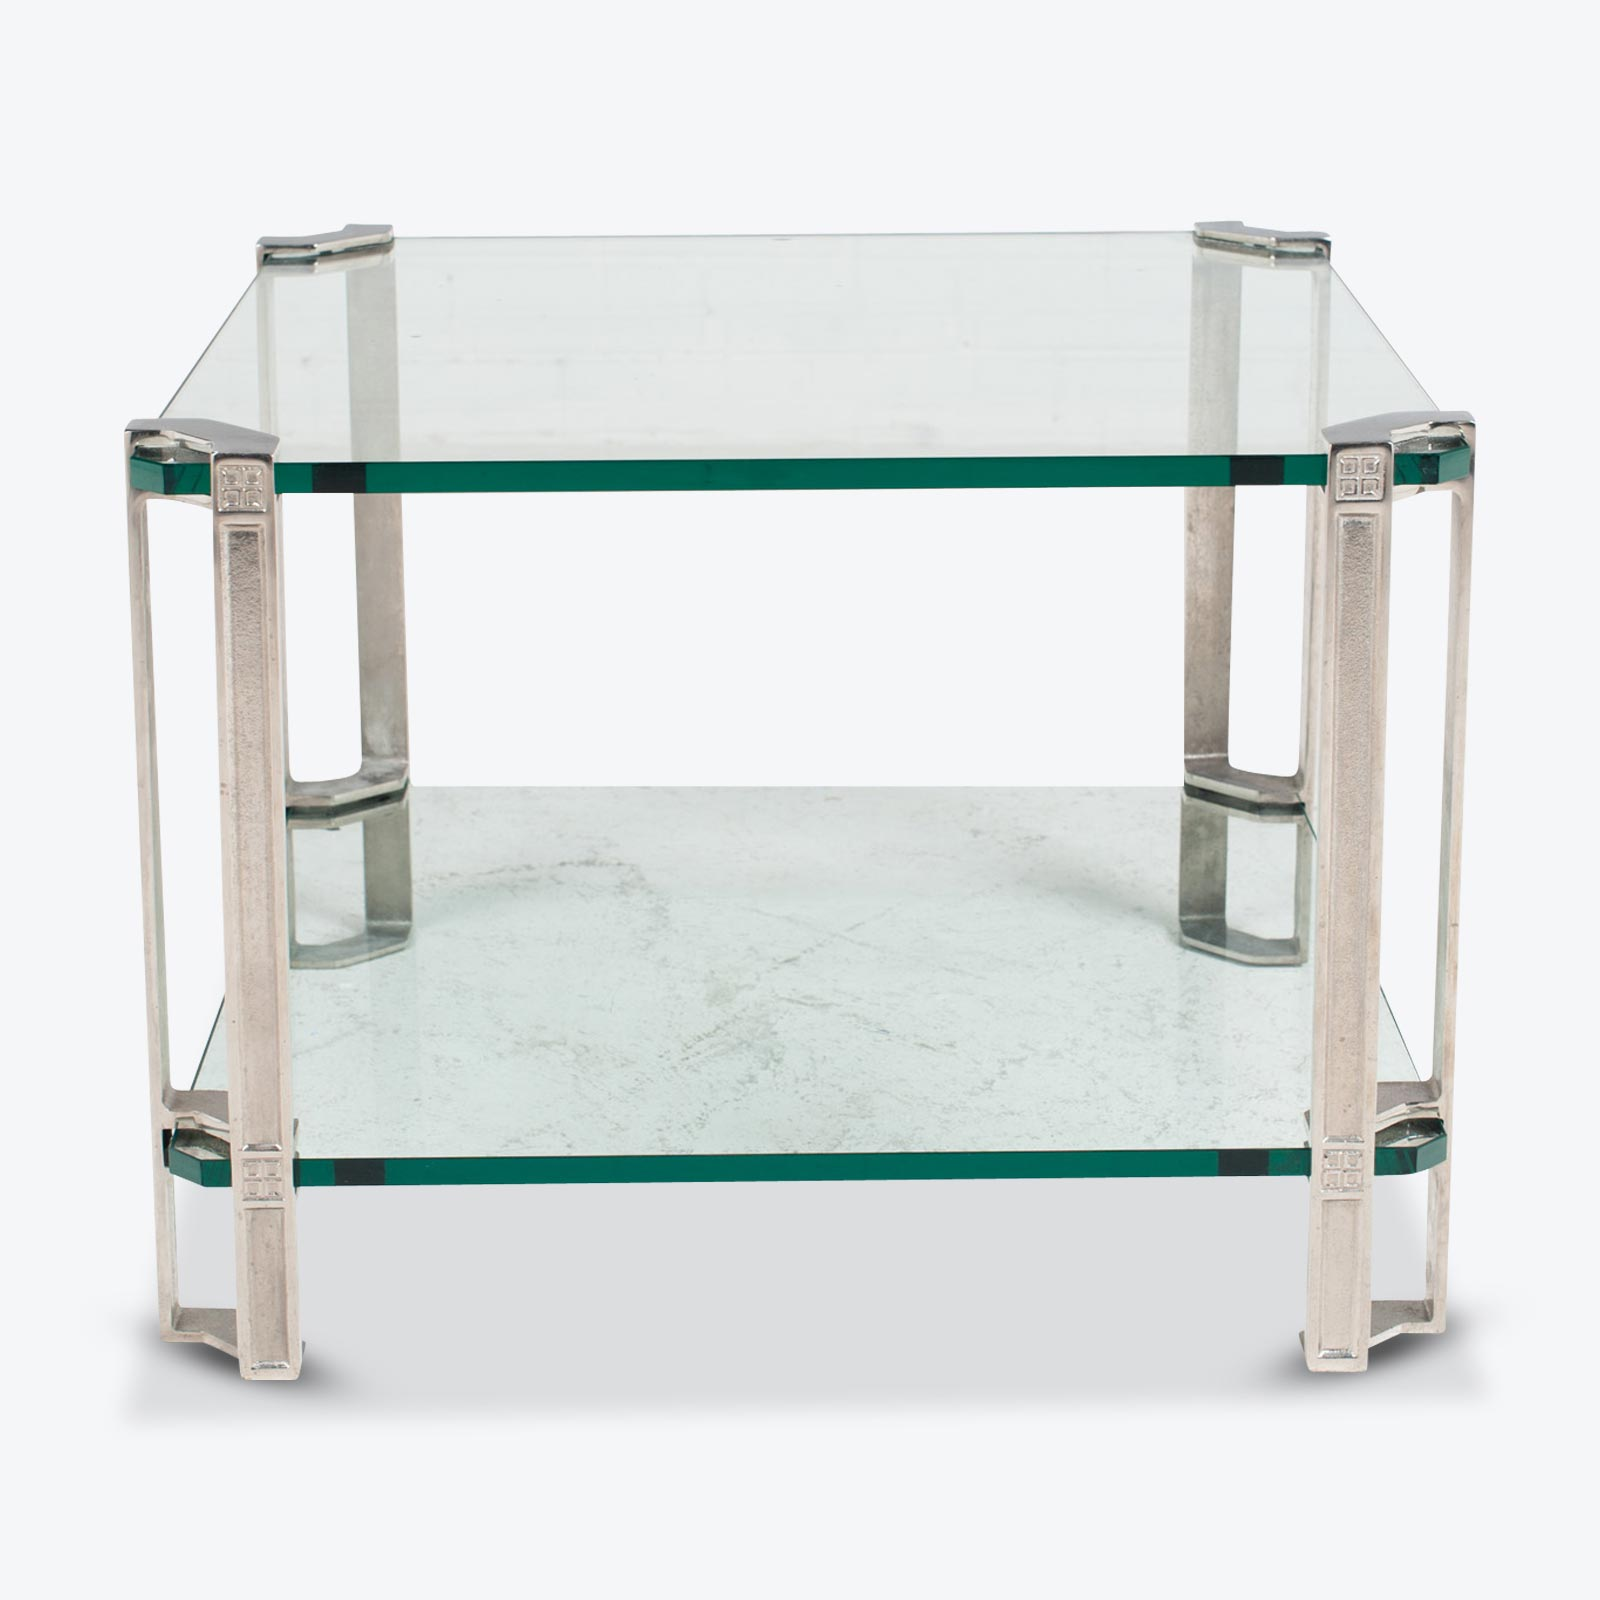 Small Side Table By Peter Ghyczy In Brass And Glass 1970s Netherlands.jpg